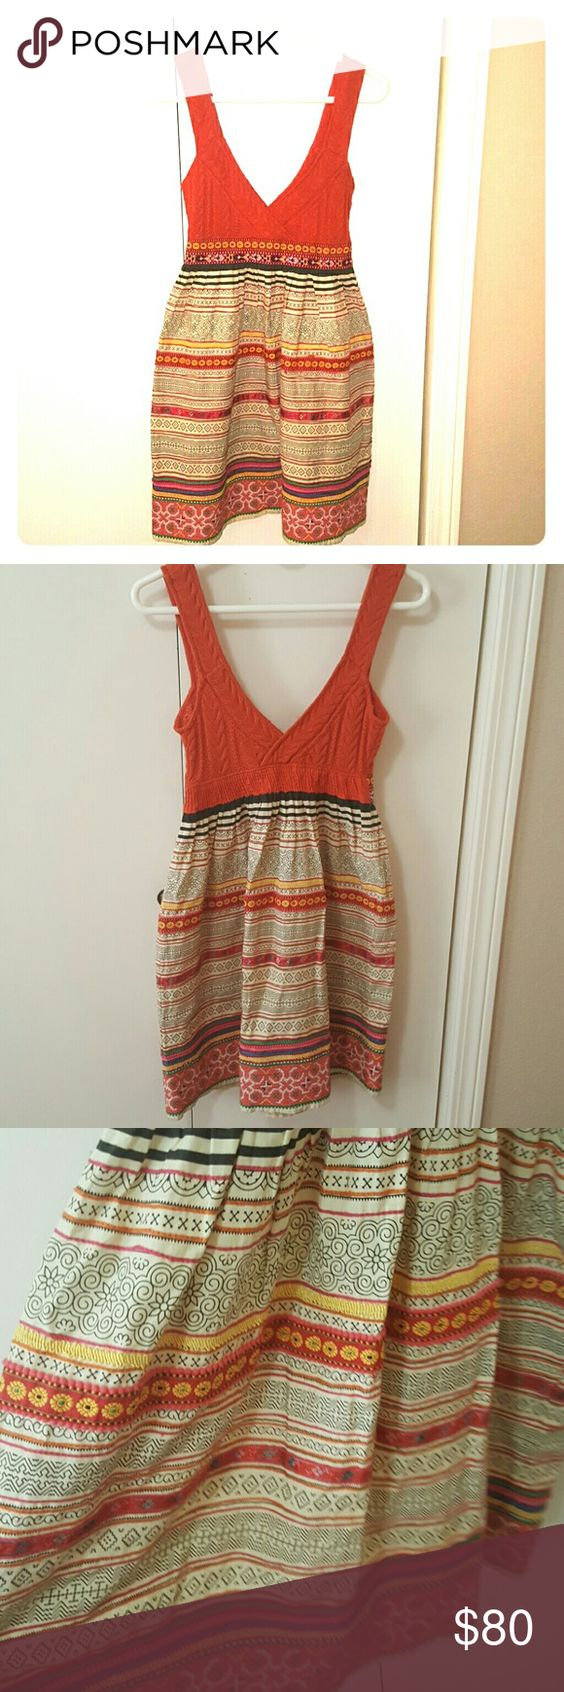 Free People bohemian dress ADORABLE bohemian free people dress! This item is in great condition. Wear this dress and you'll surely turn heads. Wear it to your favorite cafe, or lounge and listen to some records. Really, I can't express how cute this dress is! If you should have any questions please do not hesitate to ask!  Side note: Stored in my closet in a home with cats and dogs Free People Dresses